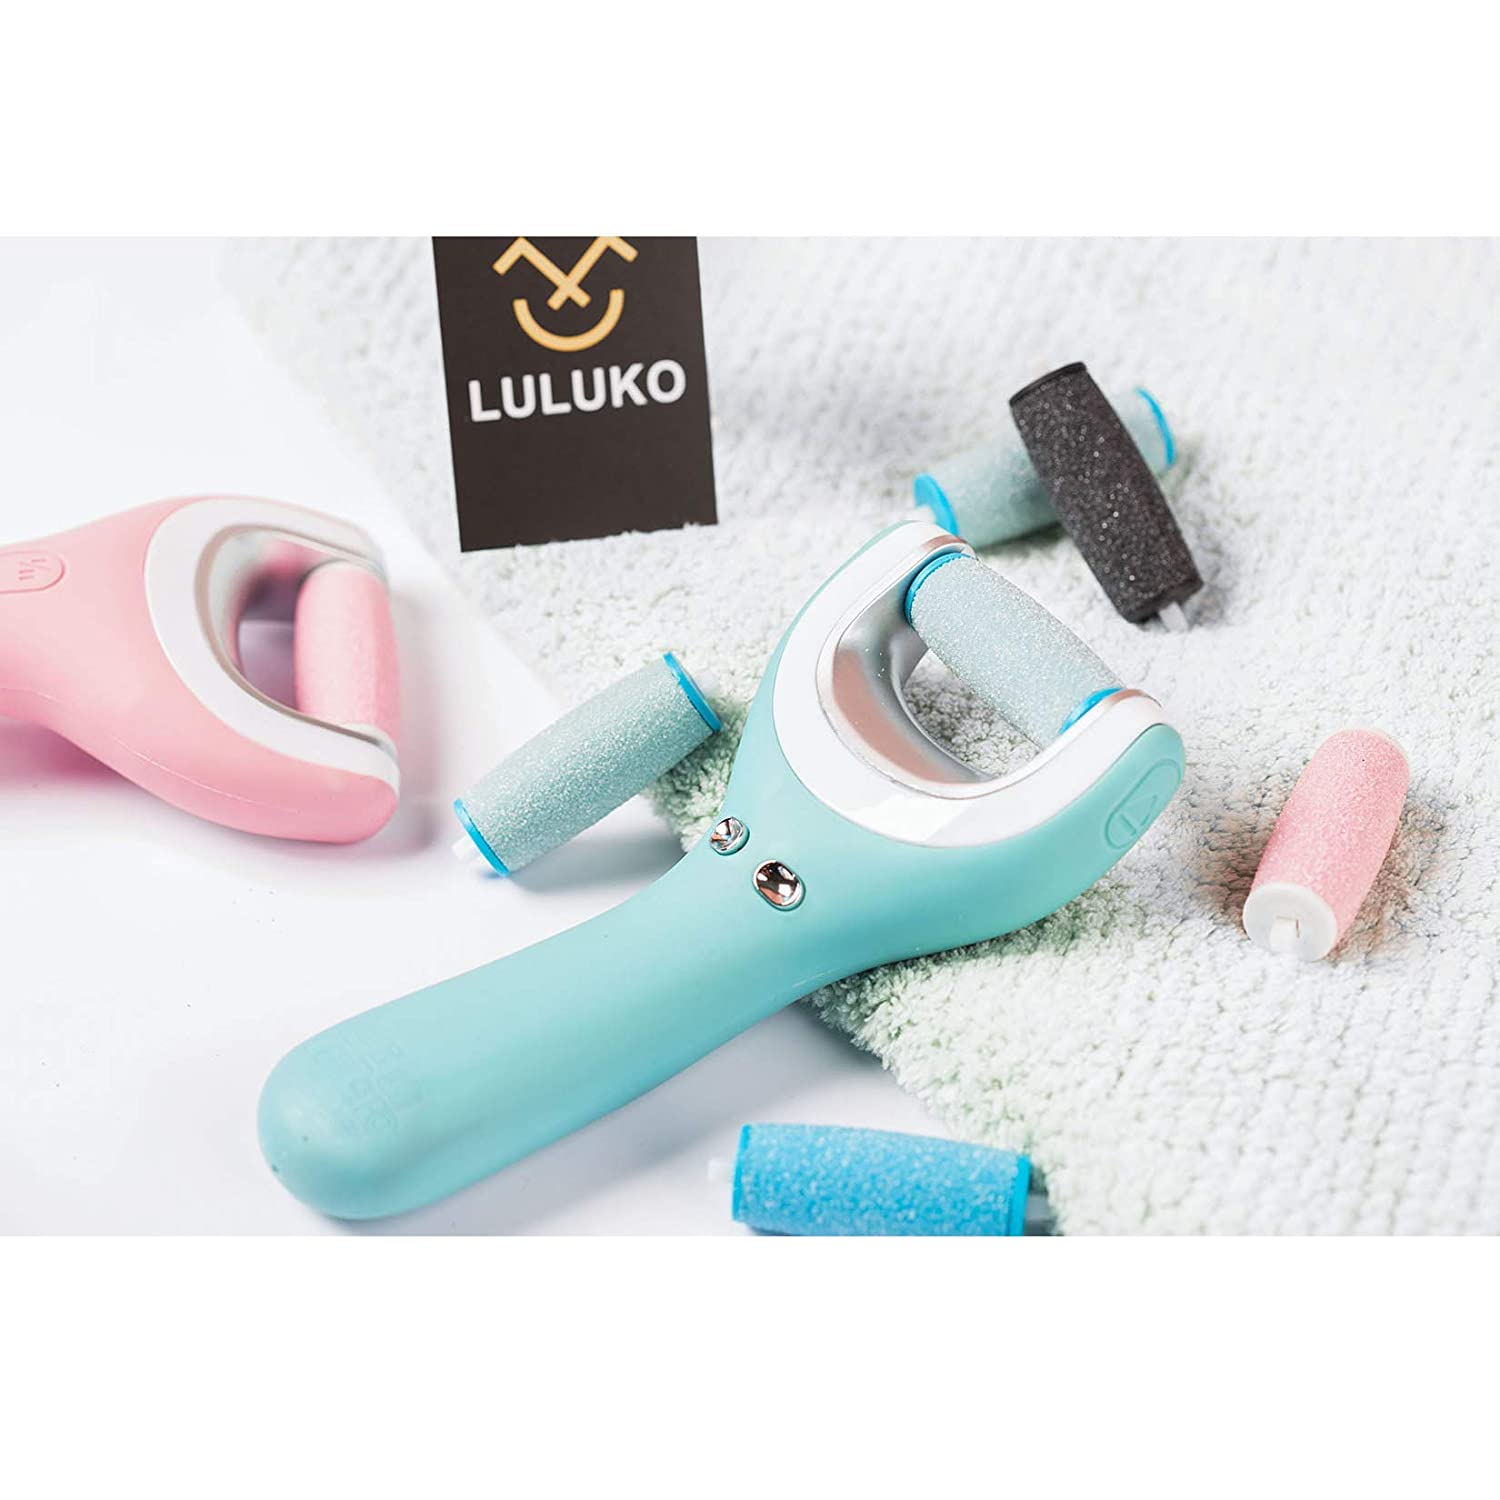 6Extra Coarse & 3Regular Coarse Replacement Roller Refill Heads Compatible with PediPefect Electronic Foot File : Beauty